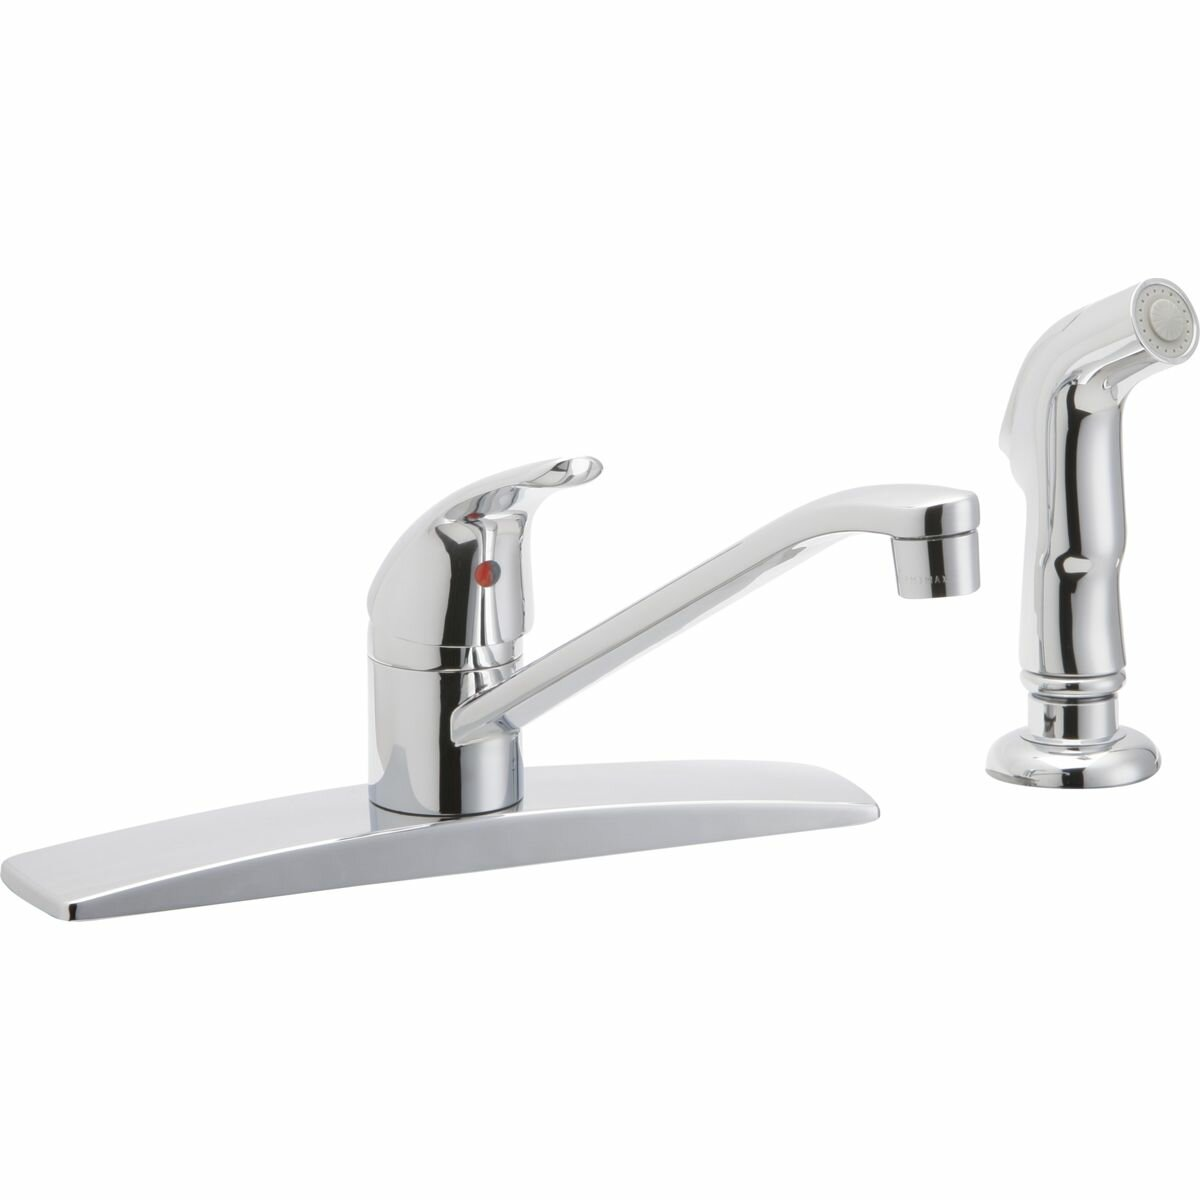 elkay single handle deck mount kitchen faucet with side